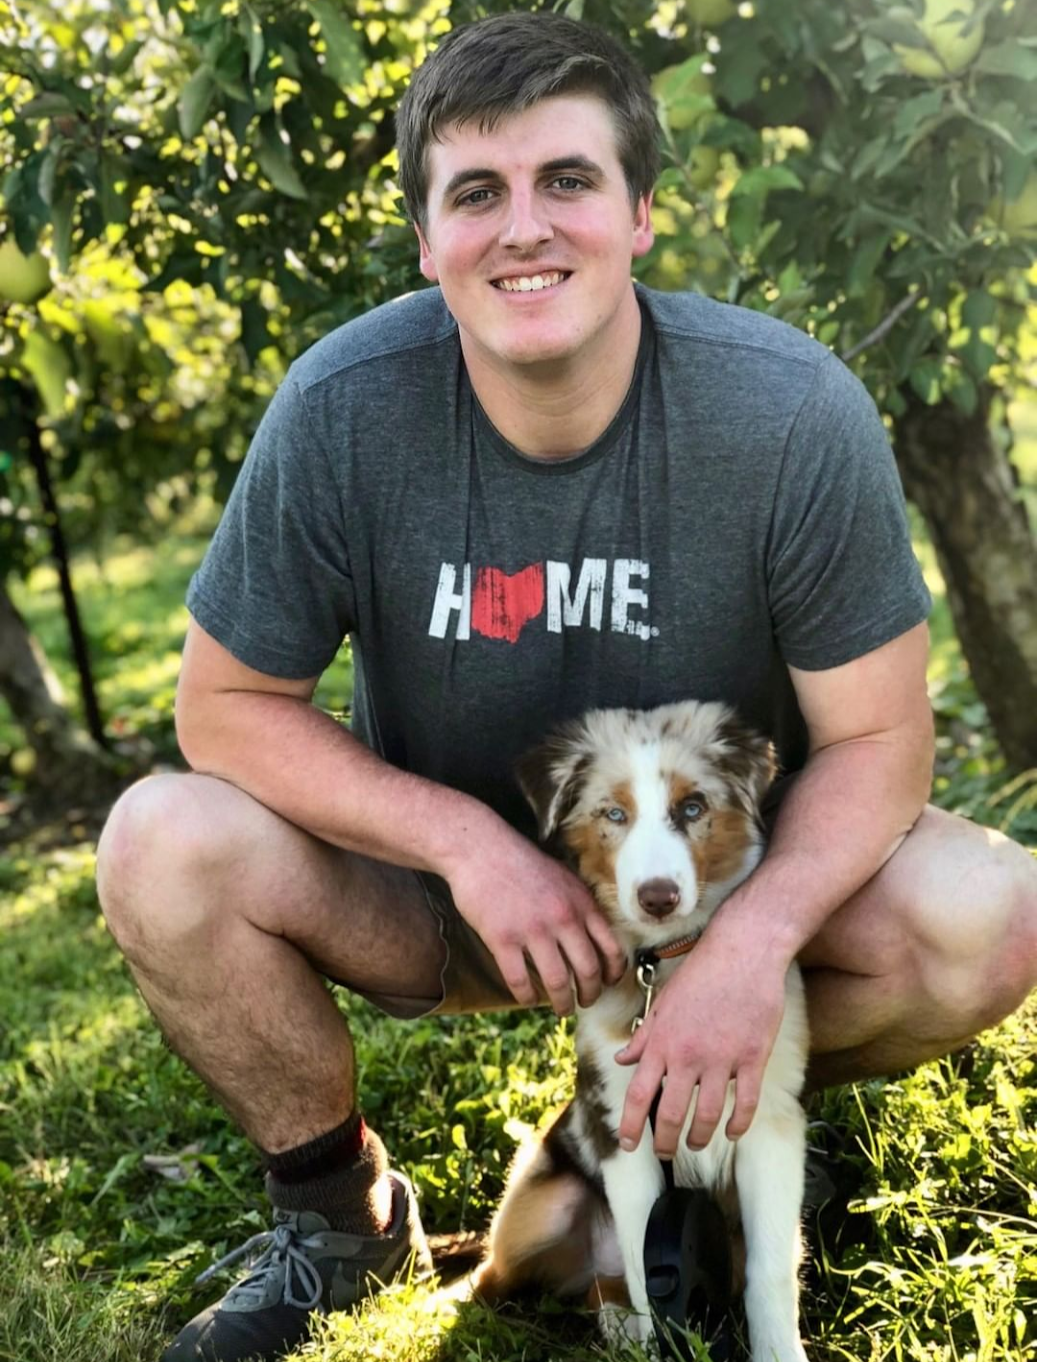 """Tyler Sweeney - 1) I am an EMT.2) I have an Australian Shepard.3) Hot Chicken gets in my belly at least 2x a week.4) I love to fish.5) I absolutely love beans lolHow have baked beans impacted your life?Backed beans have impacted my life in so many ways. They make me a happier person. Sometimes I wake up in the morning and ask myself did I have beans today. When the answer is no I get sad.... Very sad): I run to the store and get beans and boom I'm happy.Your favorite baked bean memory?My dad teaching me """"beans beans the magical fruit the more you eat the more your toot."""""""